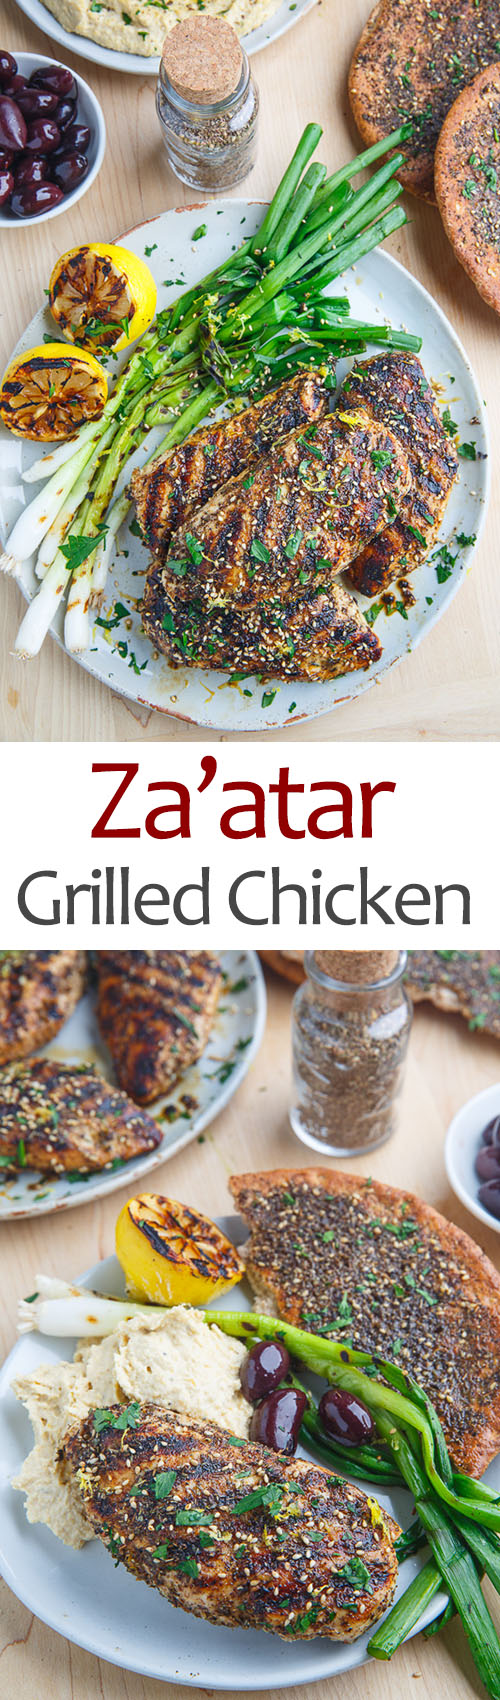 Za'atar Grilled Chicken